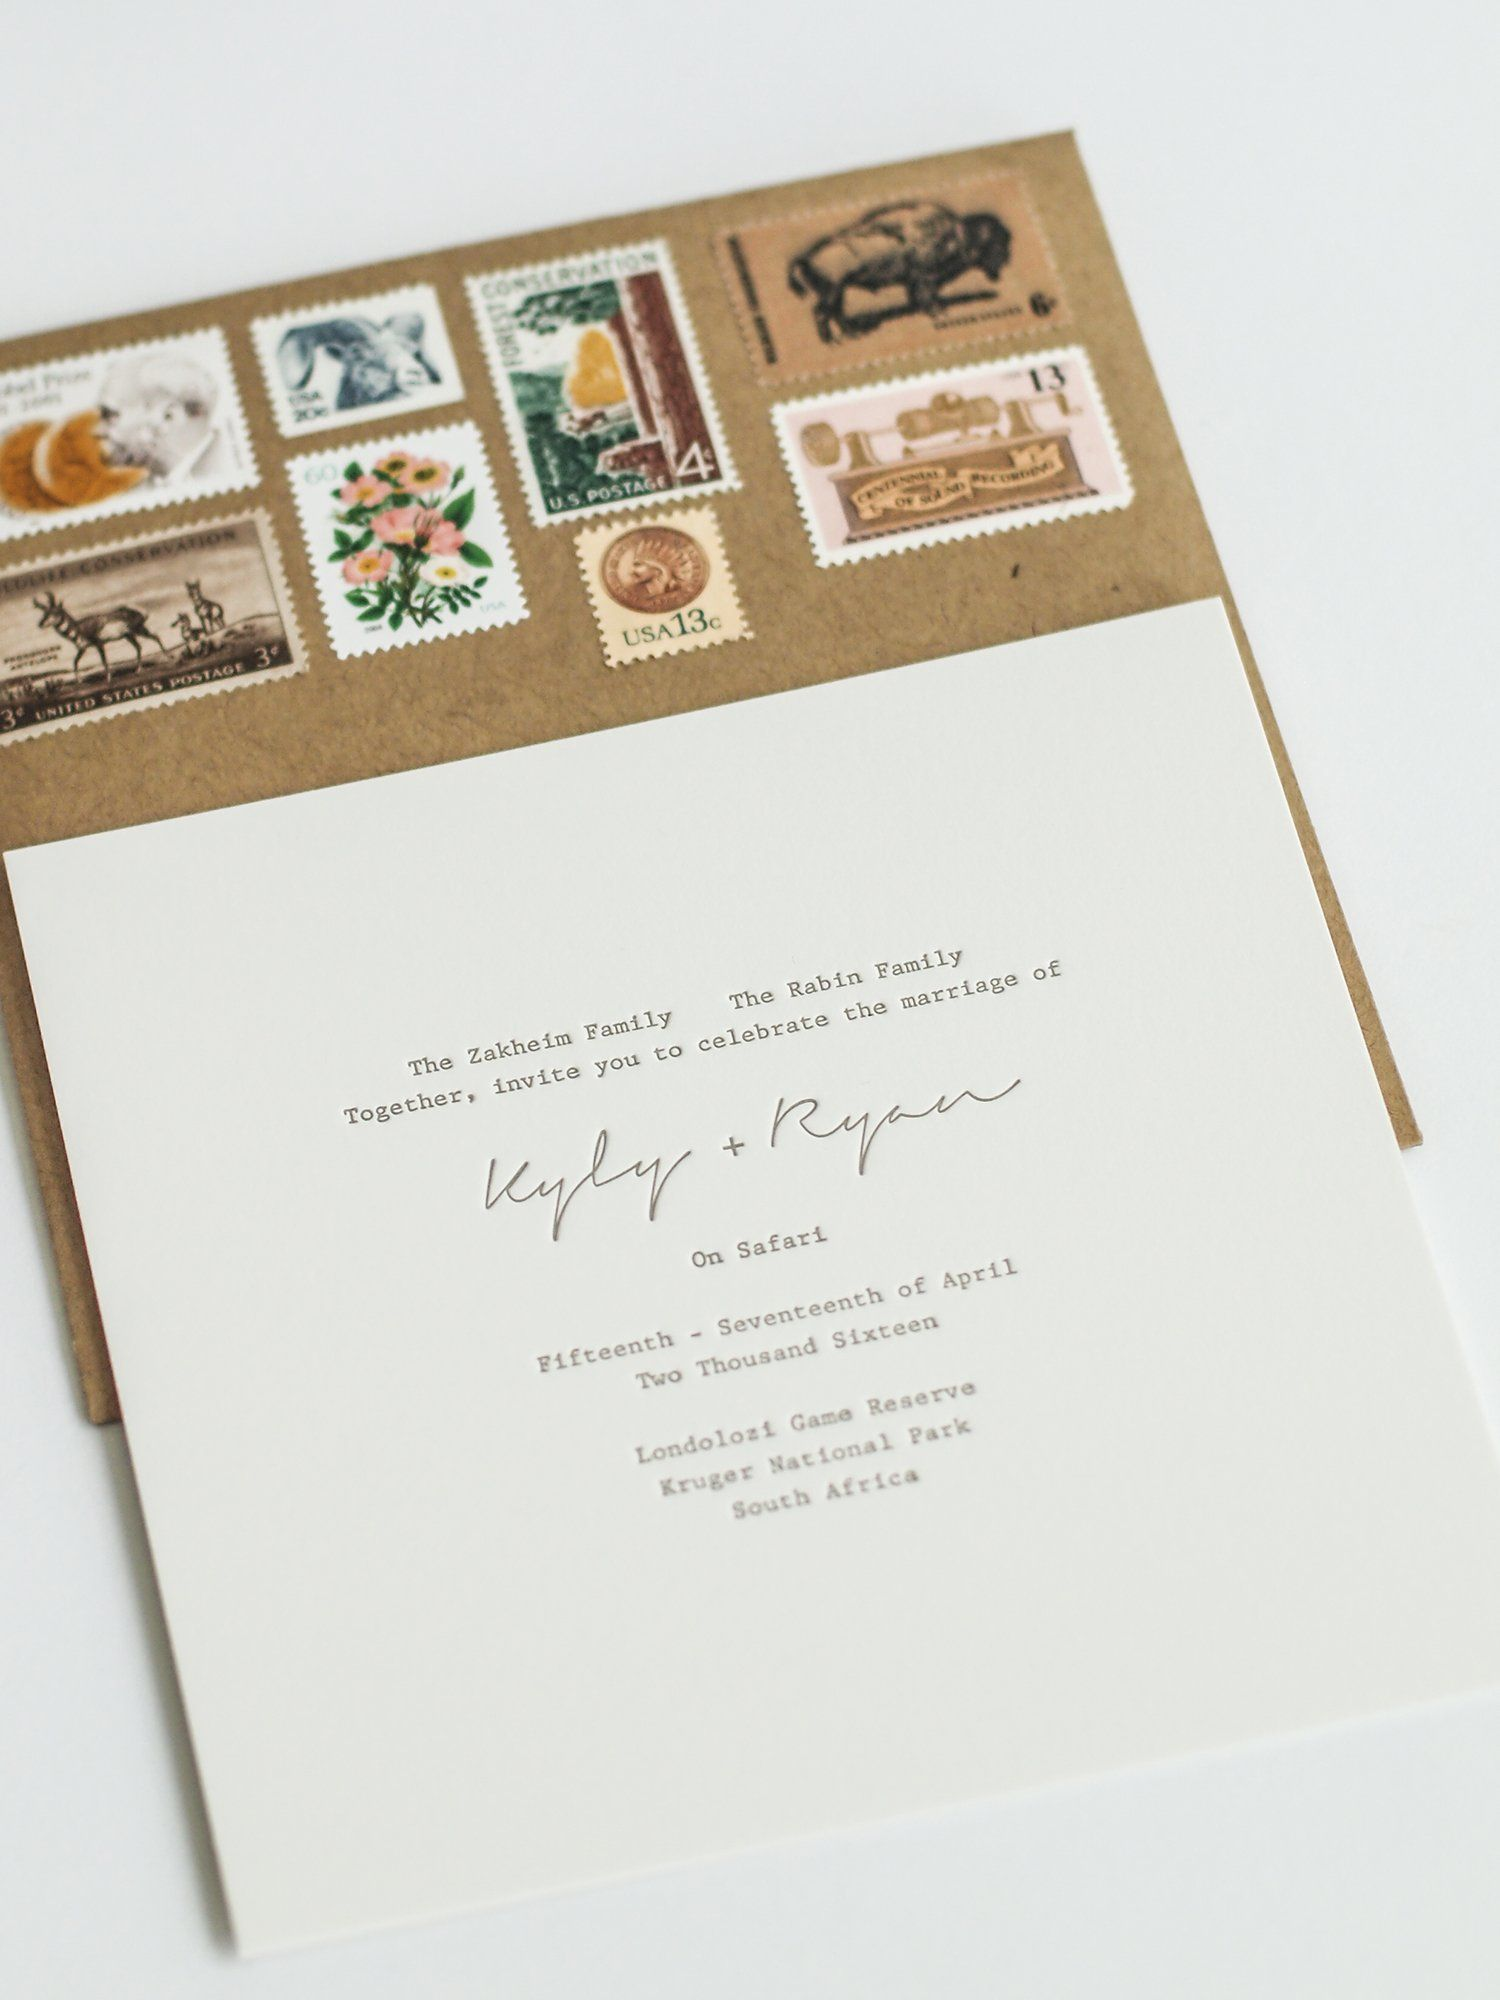 We wanted a simple, sleek letterpress invitation in muted tones that would evoke…